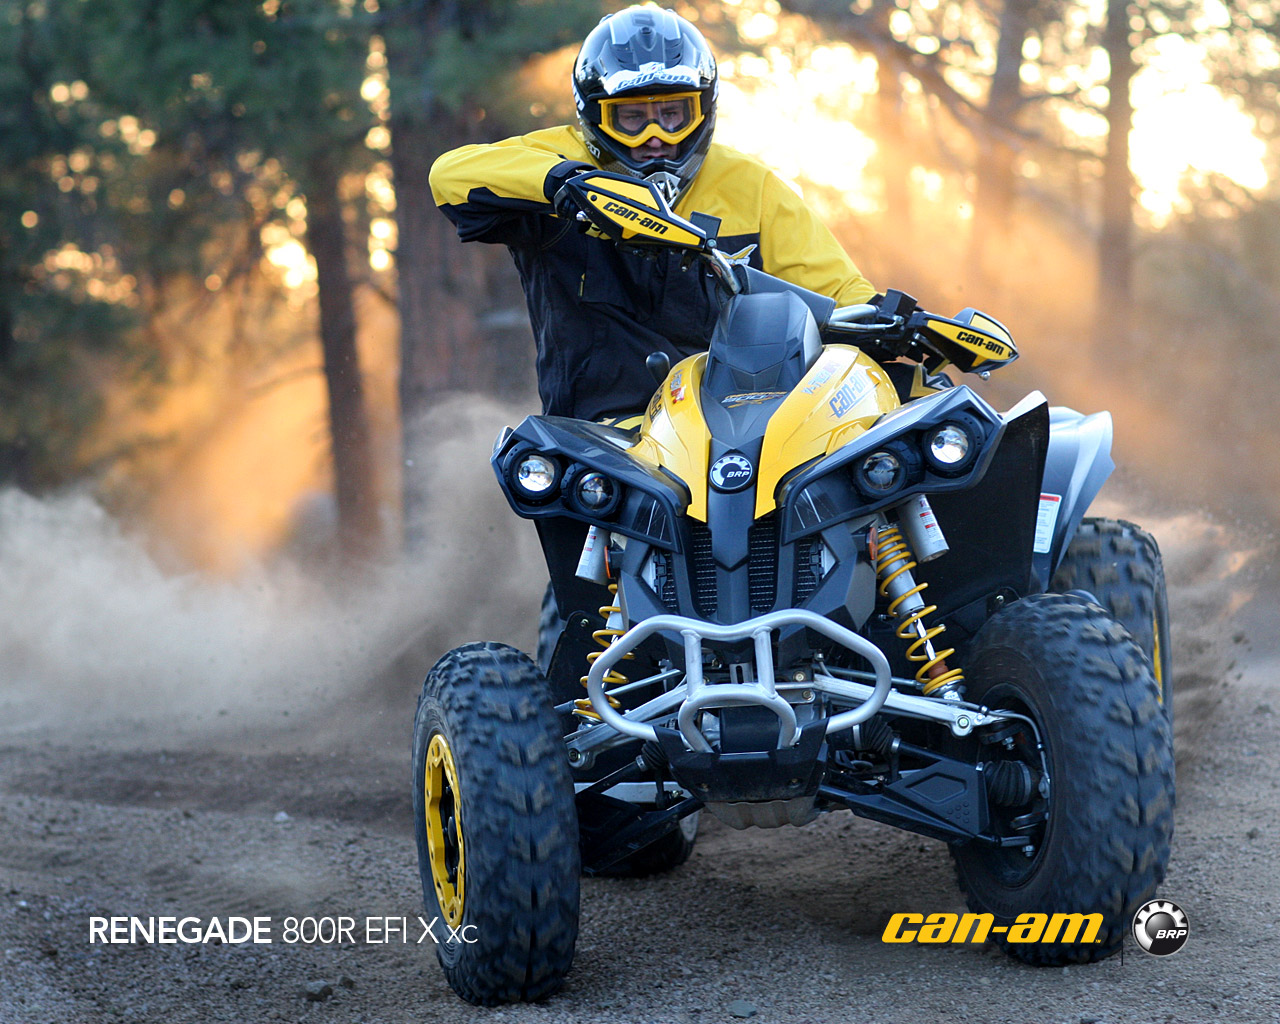 CAN-AM BOMBARDIER Renegade 800 R X xc 2011 photo 6